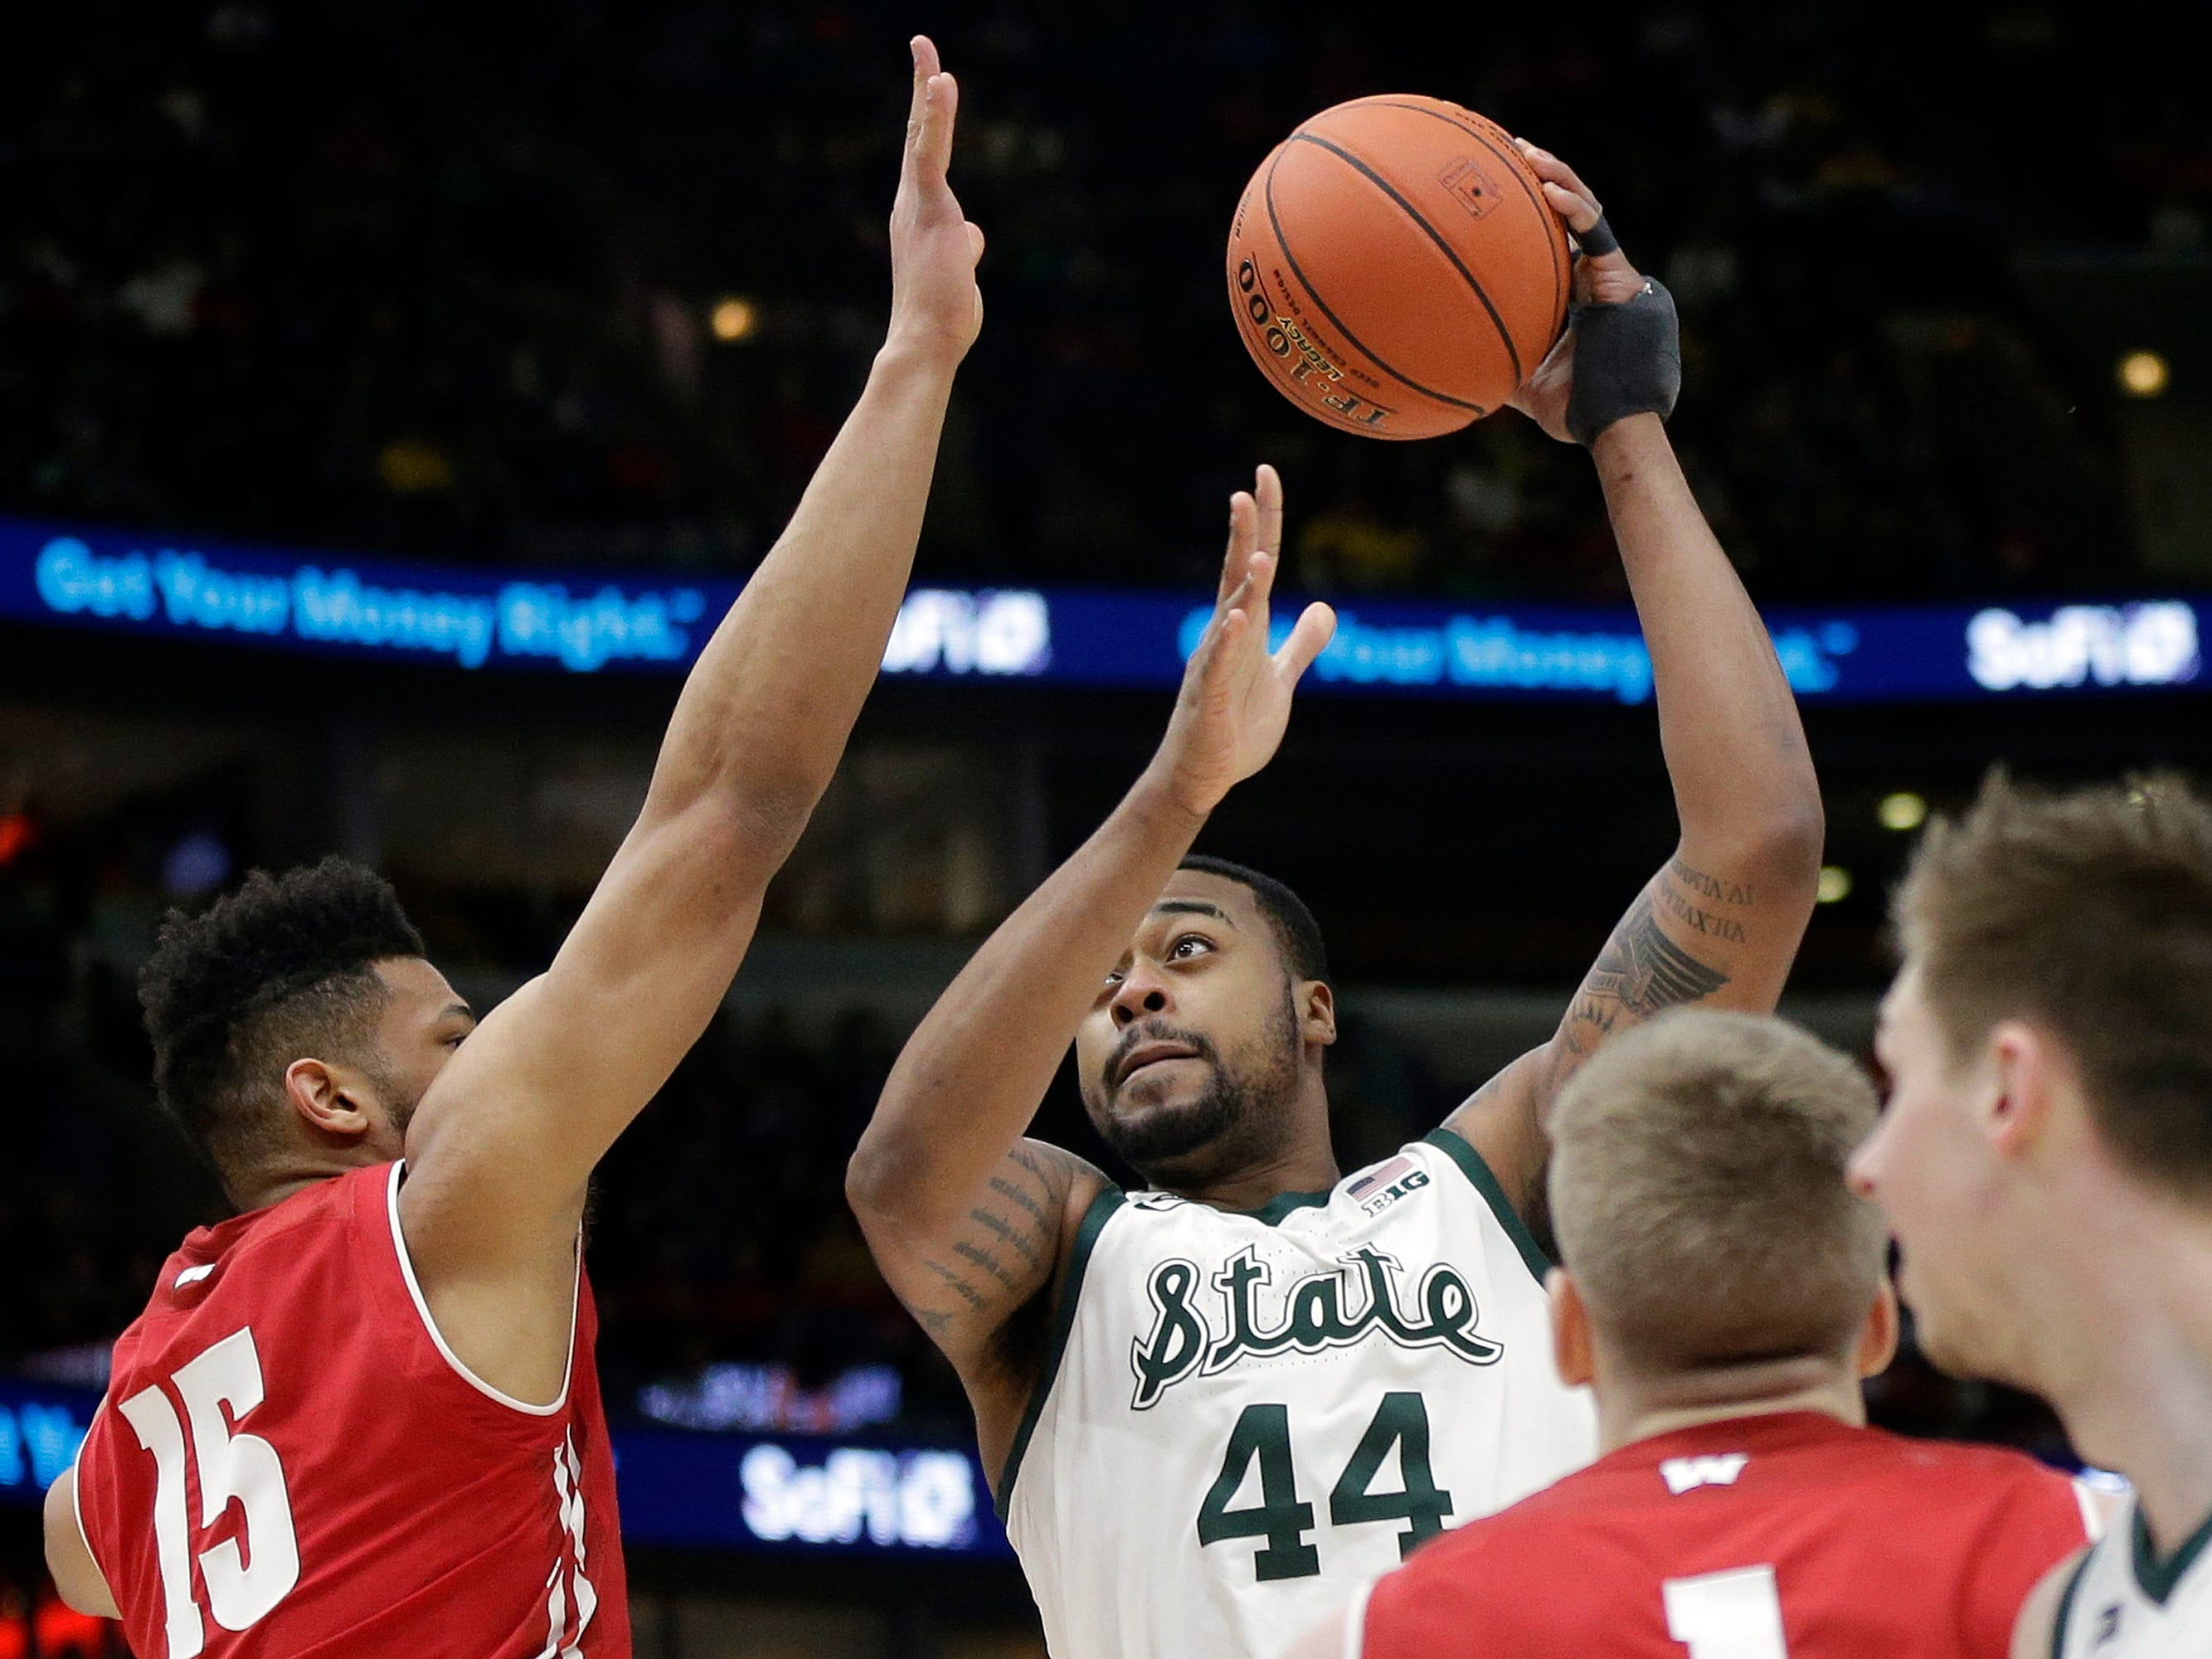 Michigan State's Nick Ward takes a shot over Wisconsin's Charles Thomas IV (15) during the first half.